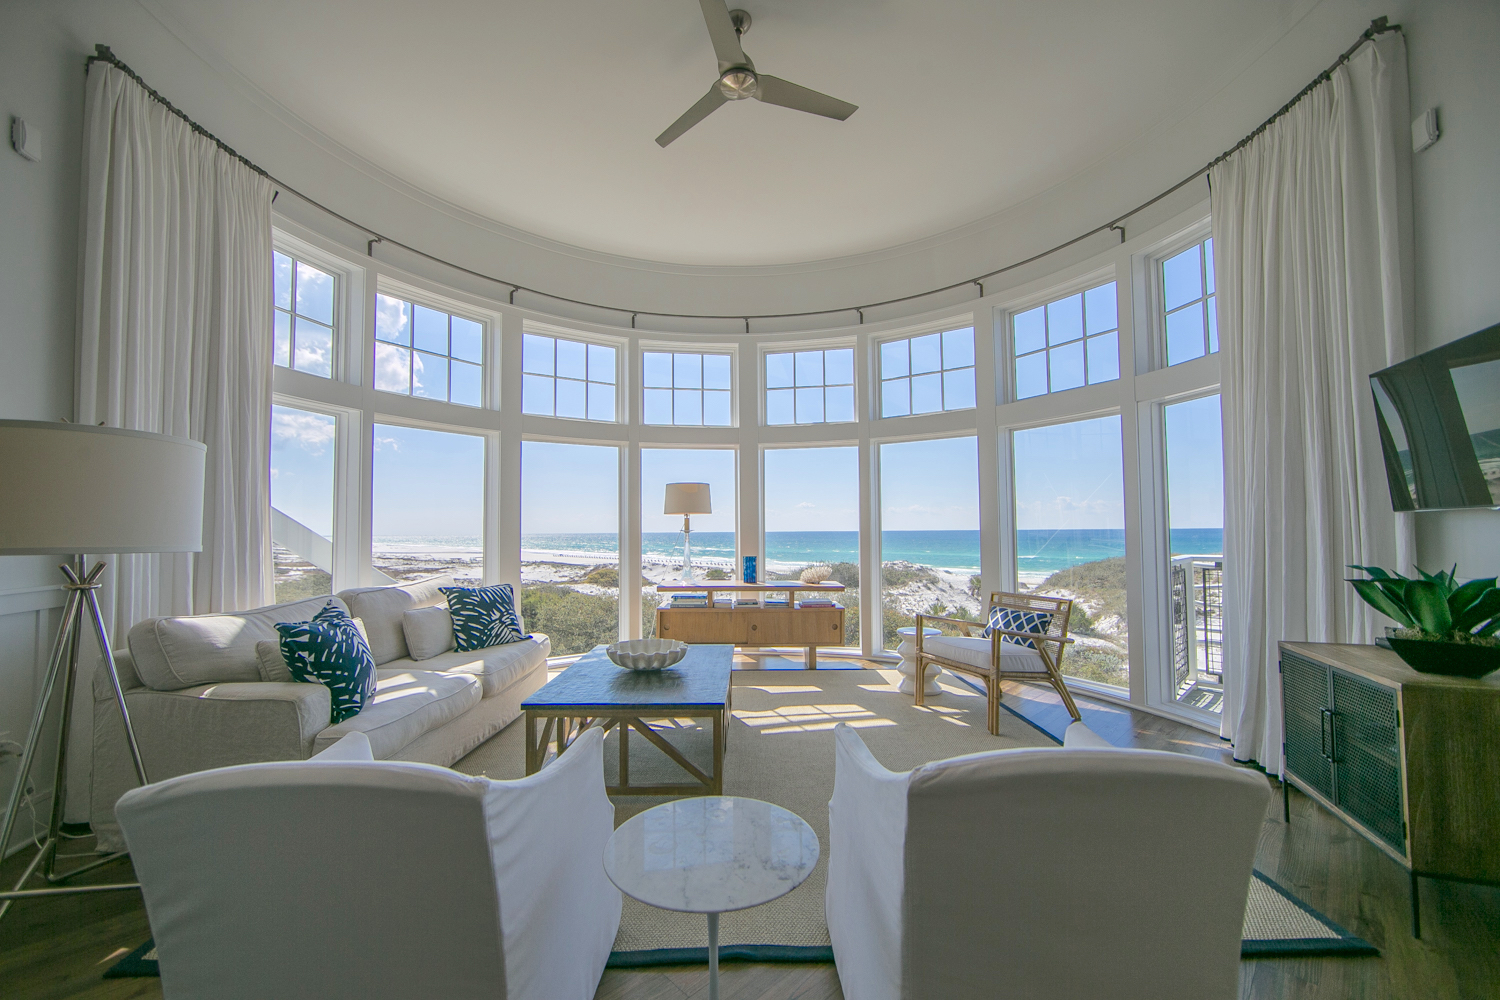 Gorgeous living room rotunda with high ceilings frame the most spectacular view of the Gulf